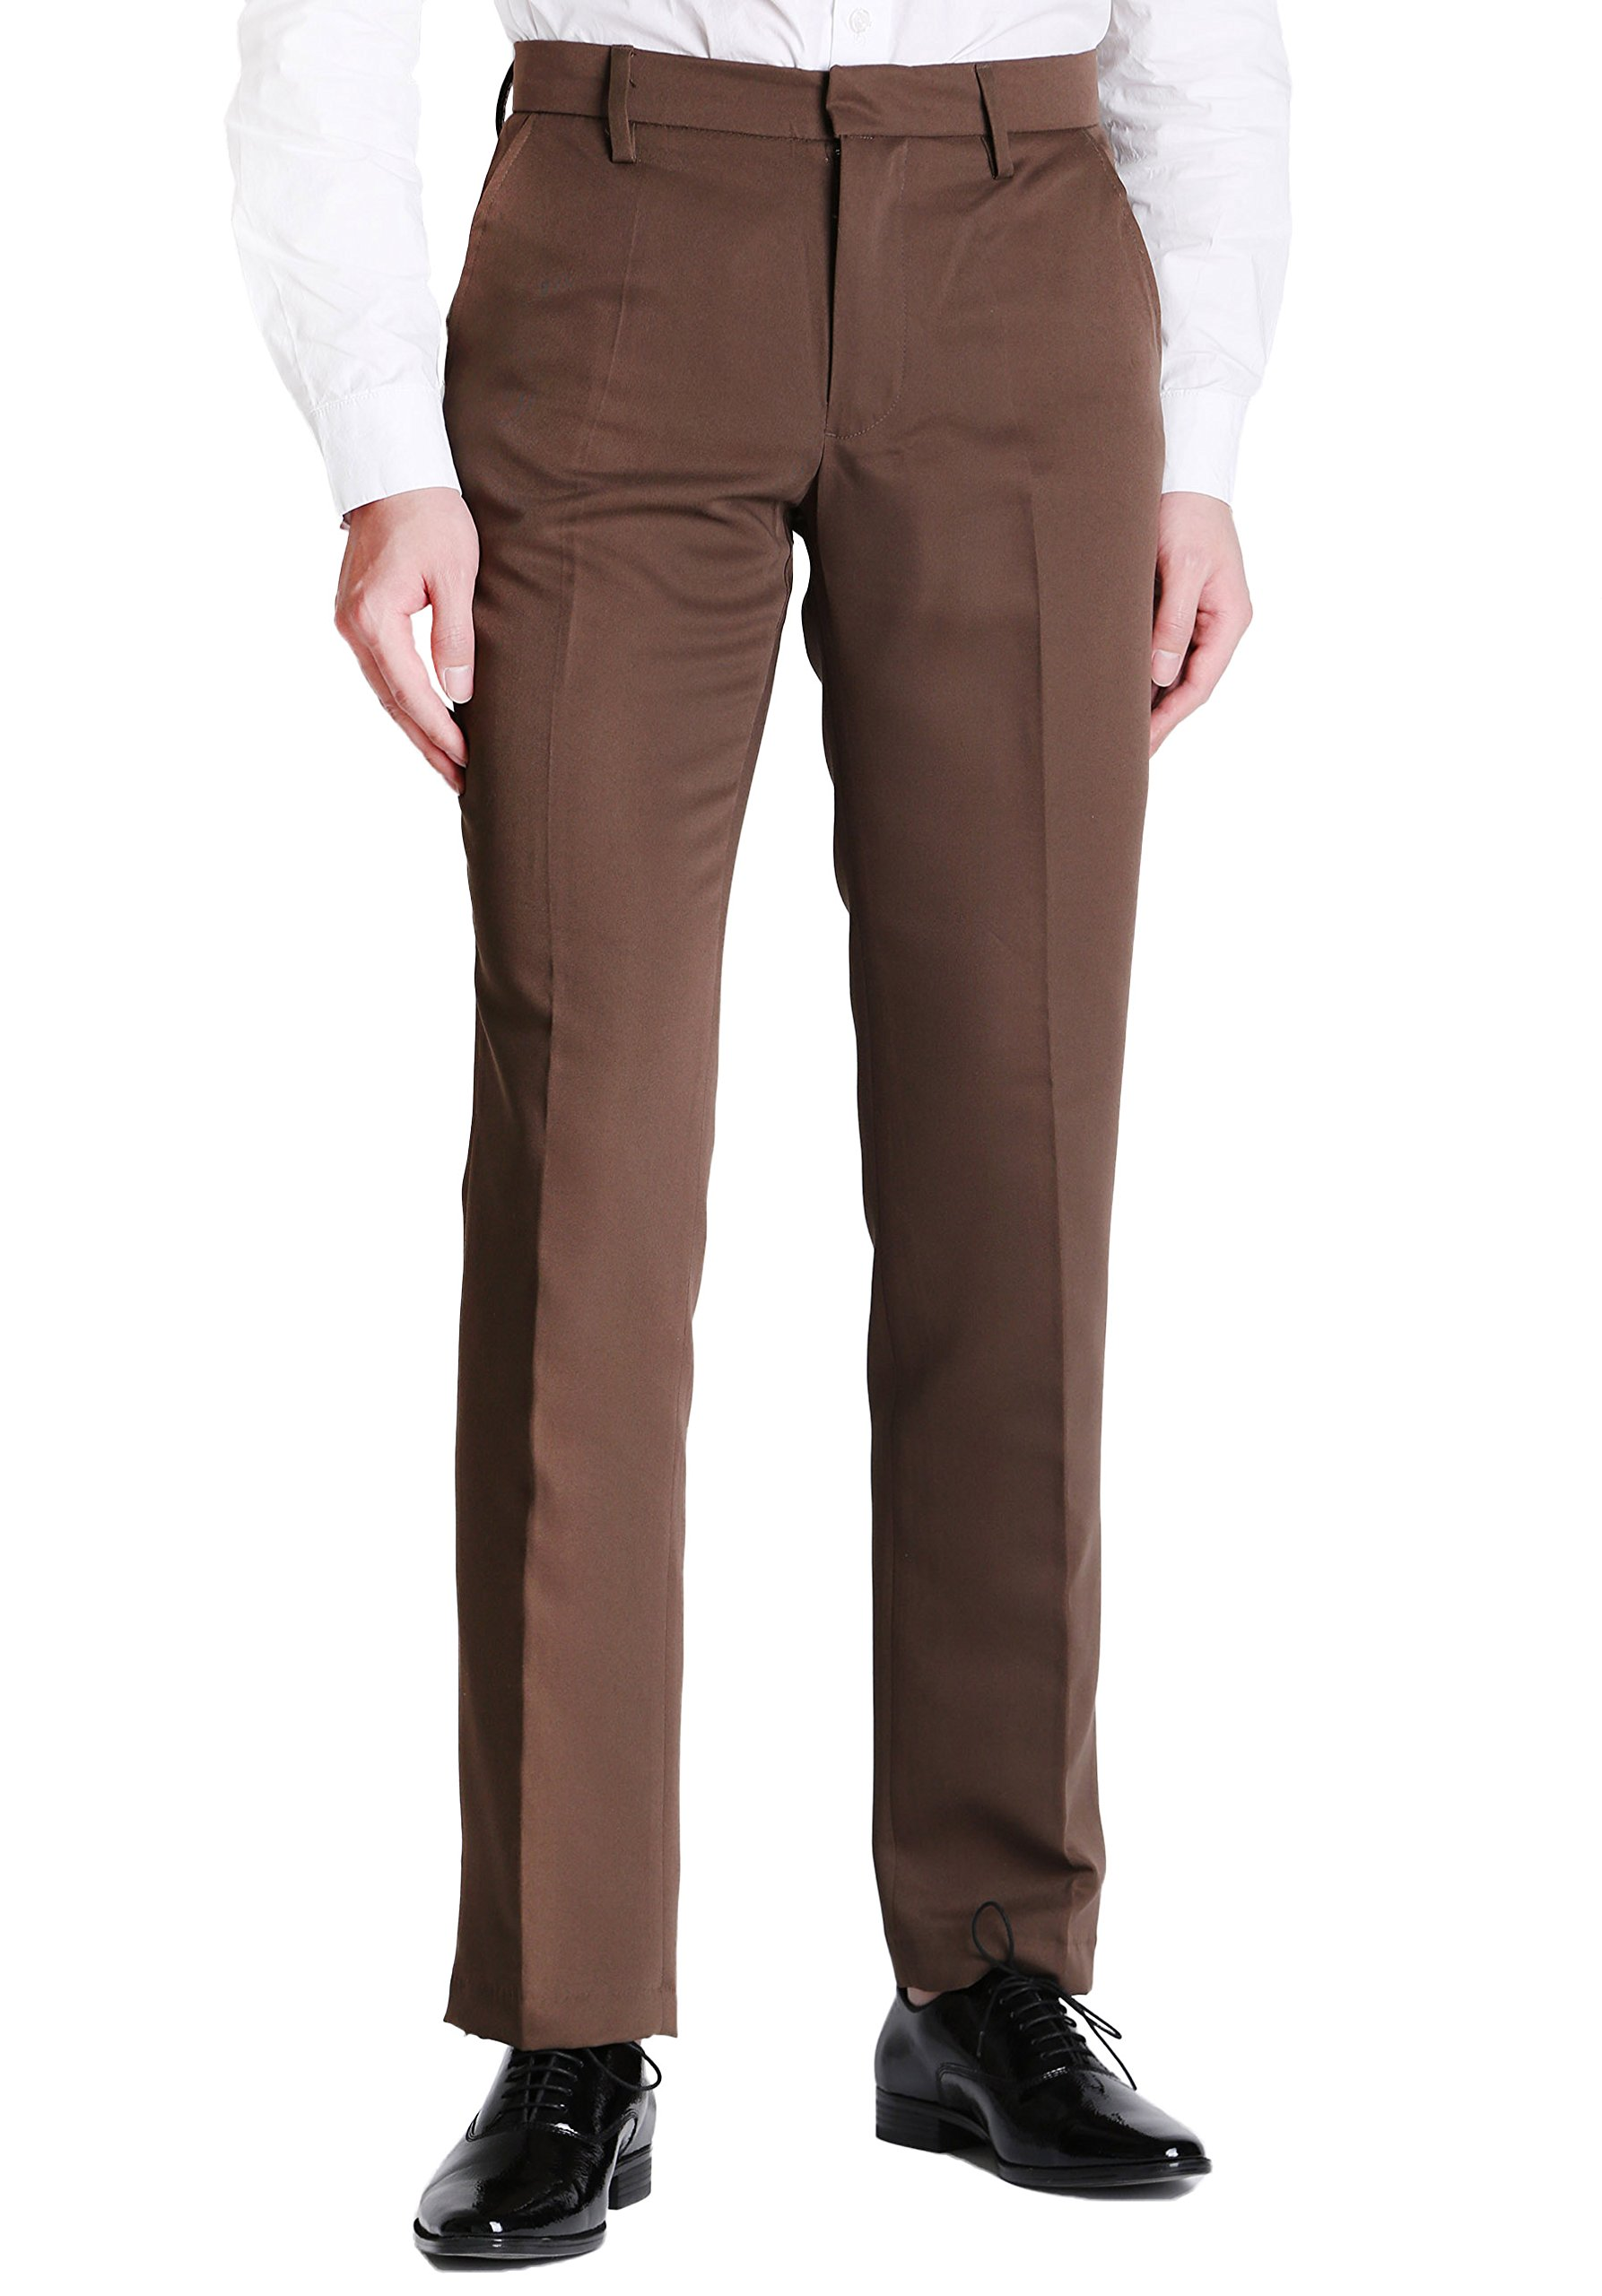 Vero Viva Men's Straight Leg Fit Flat Front Dress Pants Business Casual Trousers(34W32L,Coffee)